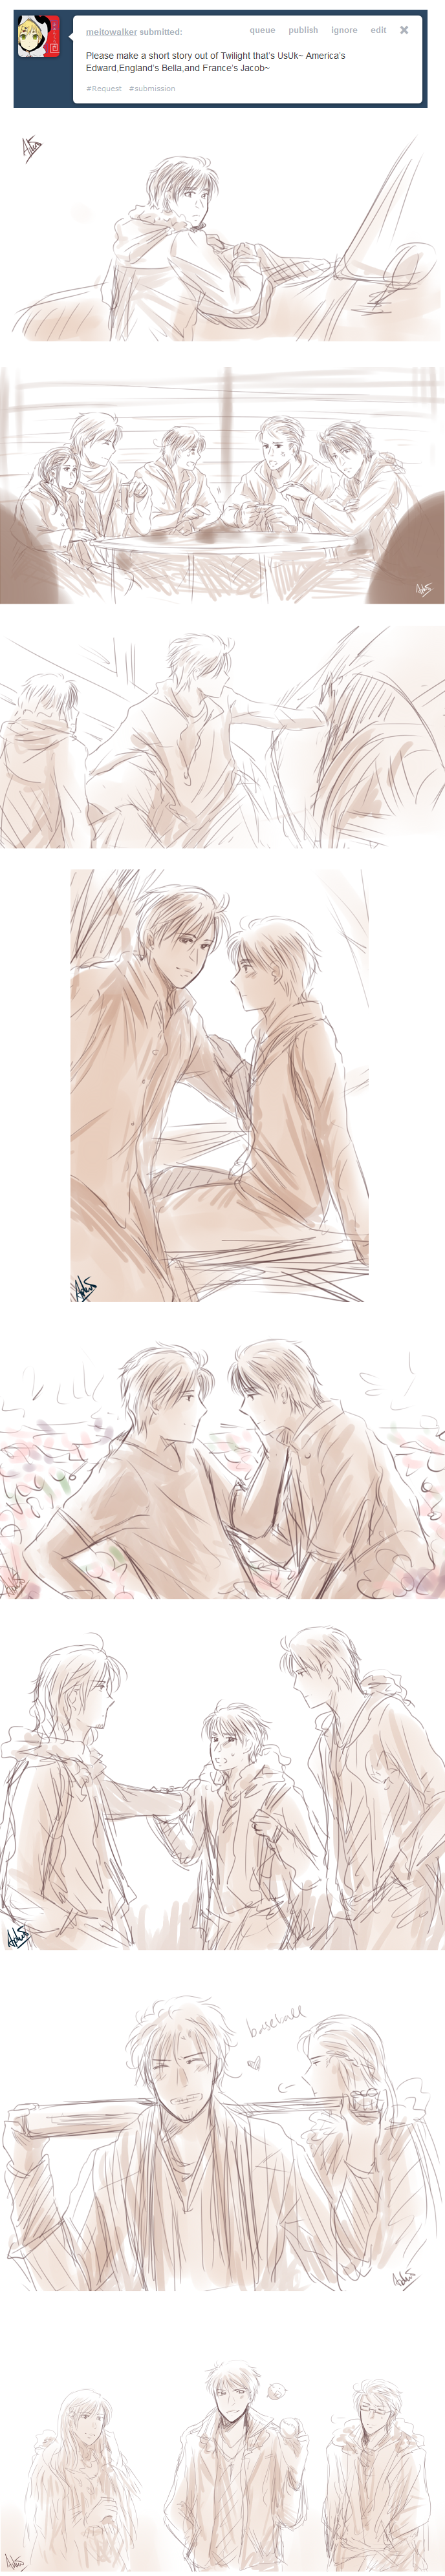 APH -- USUK -- Twilight Saga by aphin123